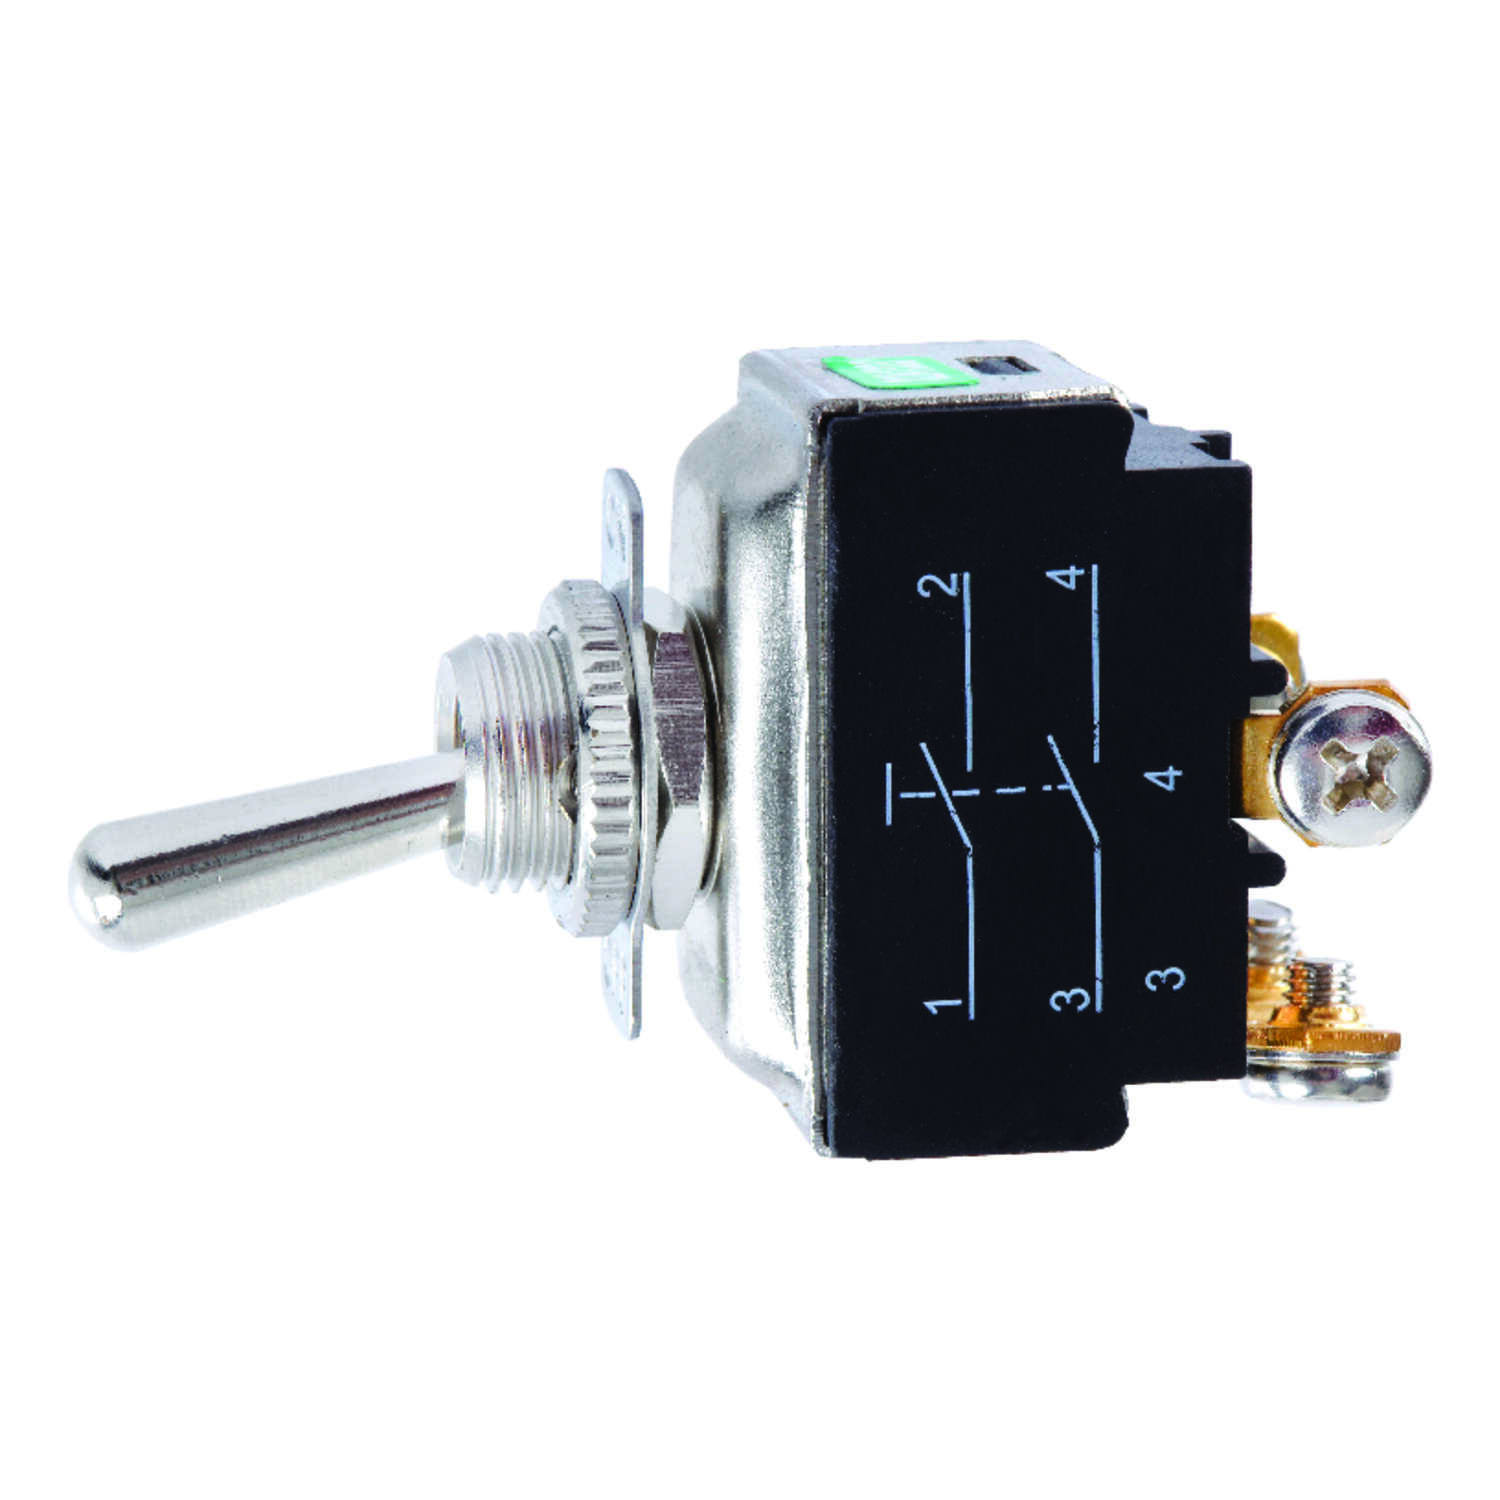 Jandorf Double Pole Power Tool Switch Silver 1 20 Amps Toggle Ace Light Switches